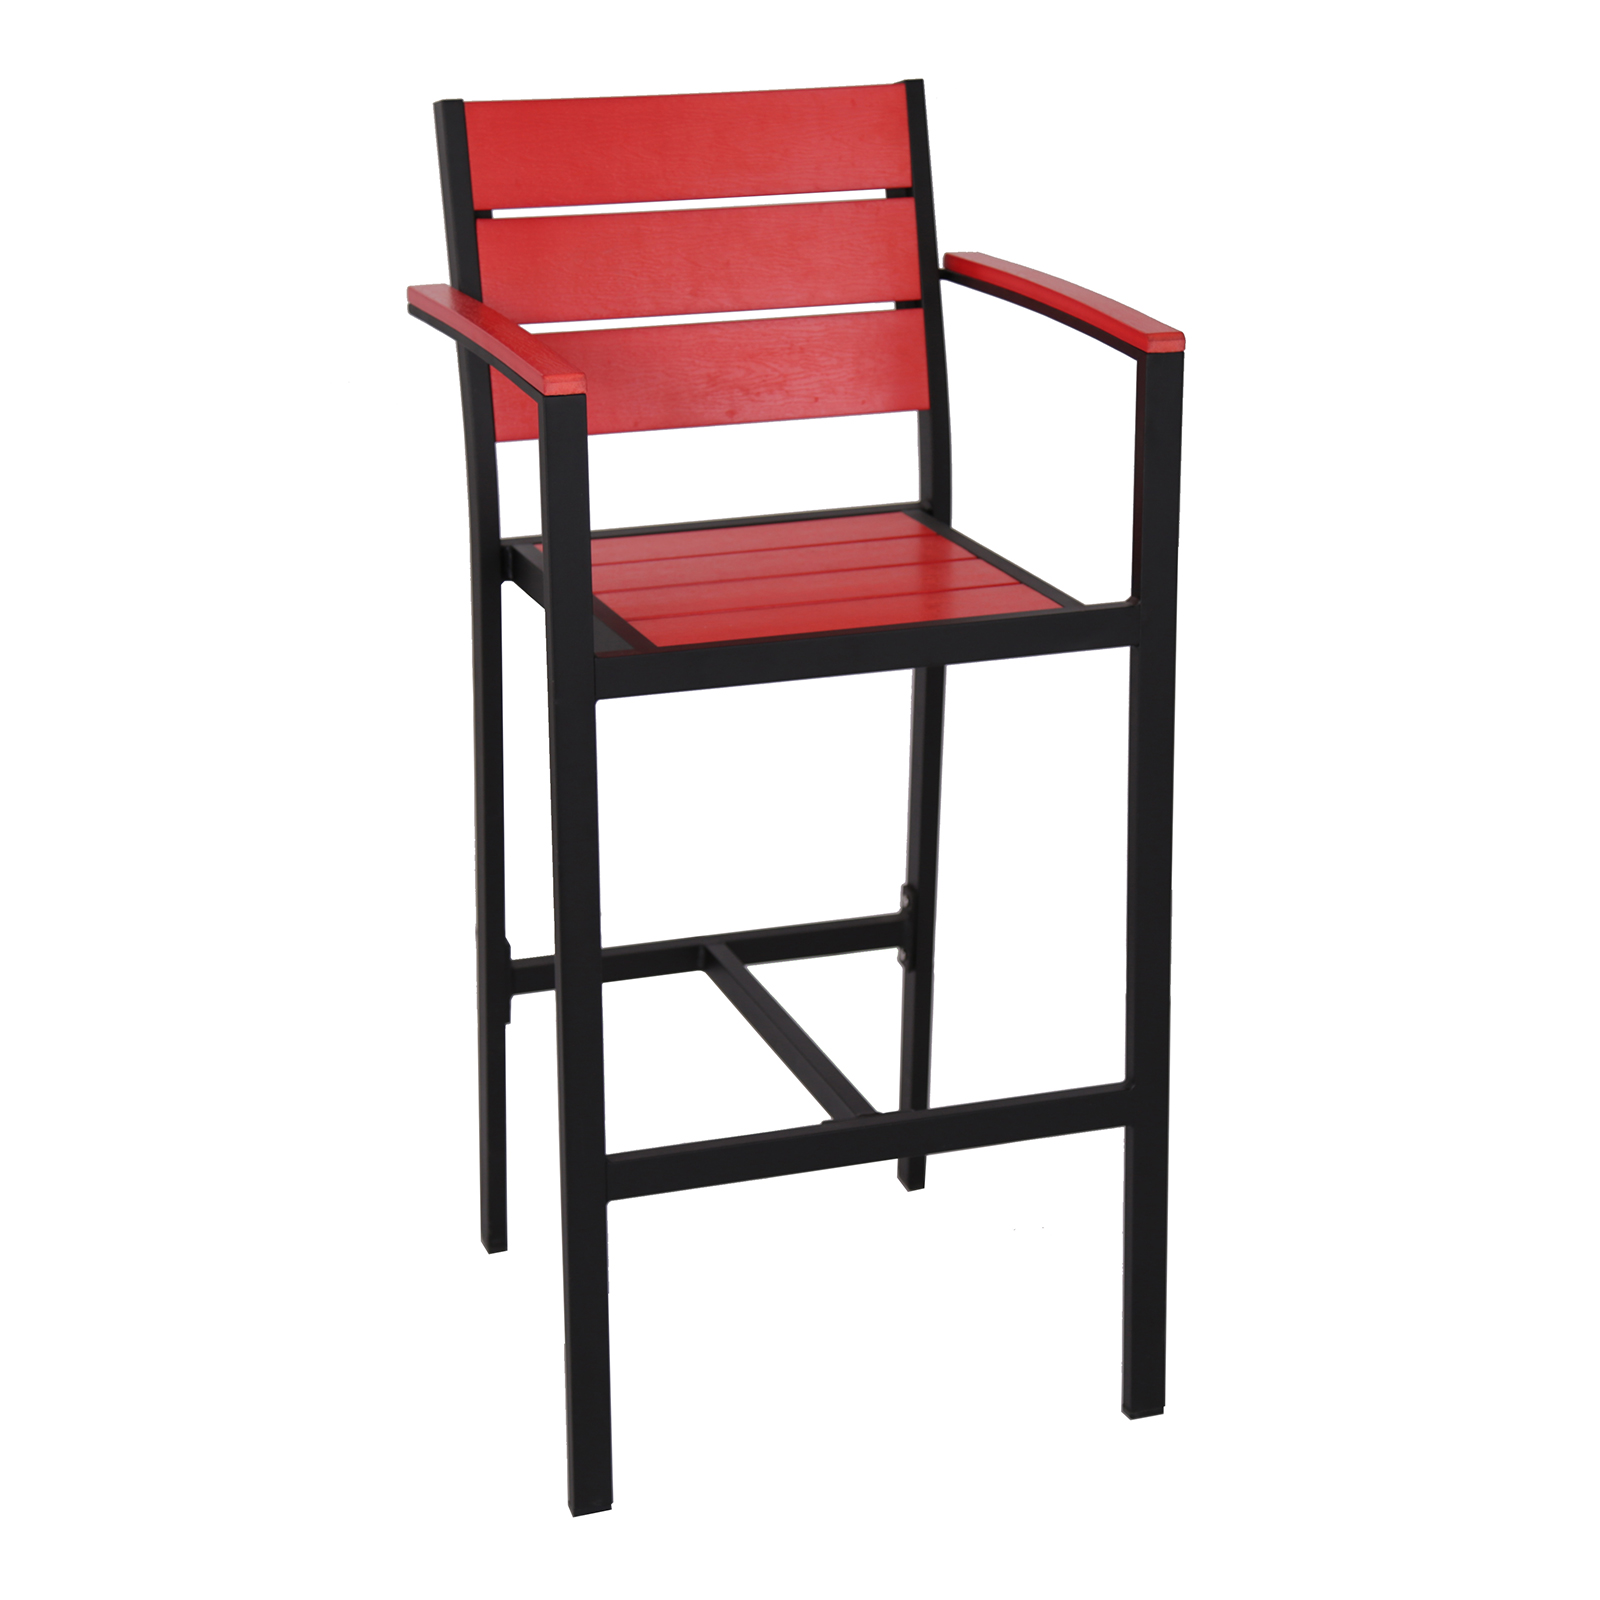 G & A Commercial Seating 8816AR bar stool, outdoor